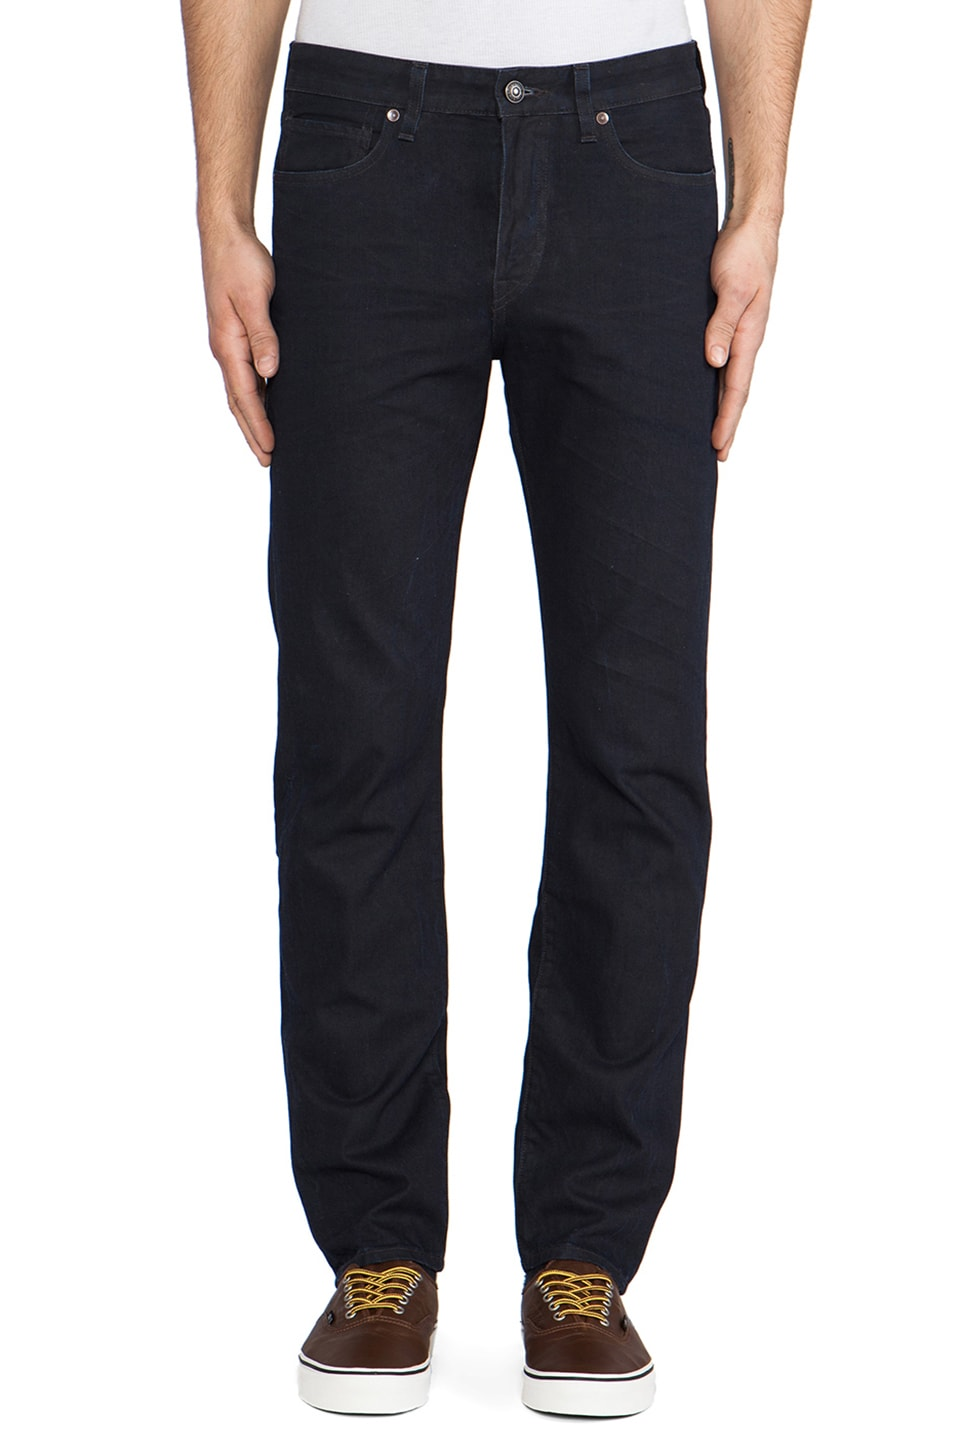 LEVI'S: Made & Crafted Needle Narrow in Stormy Black